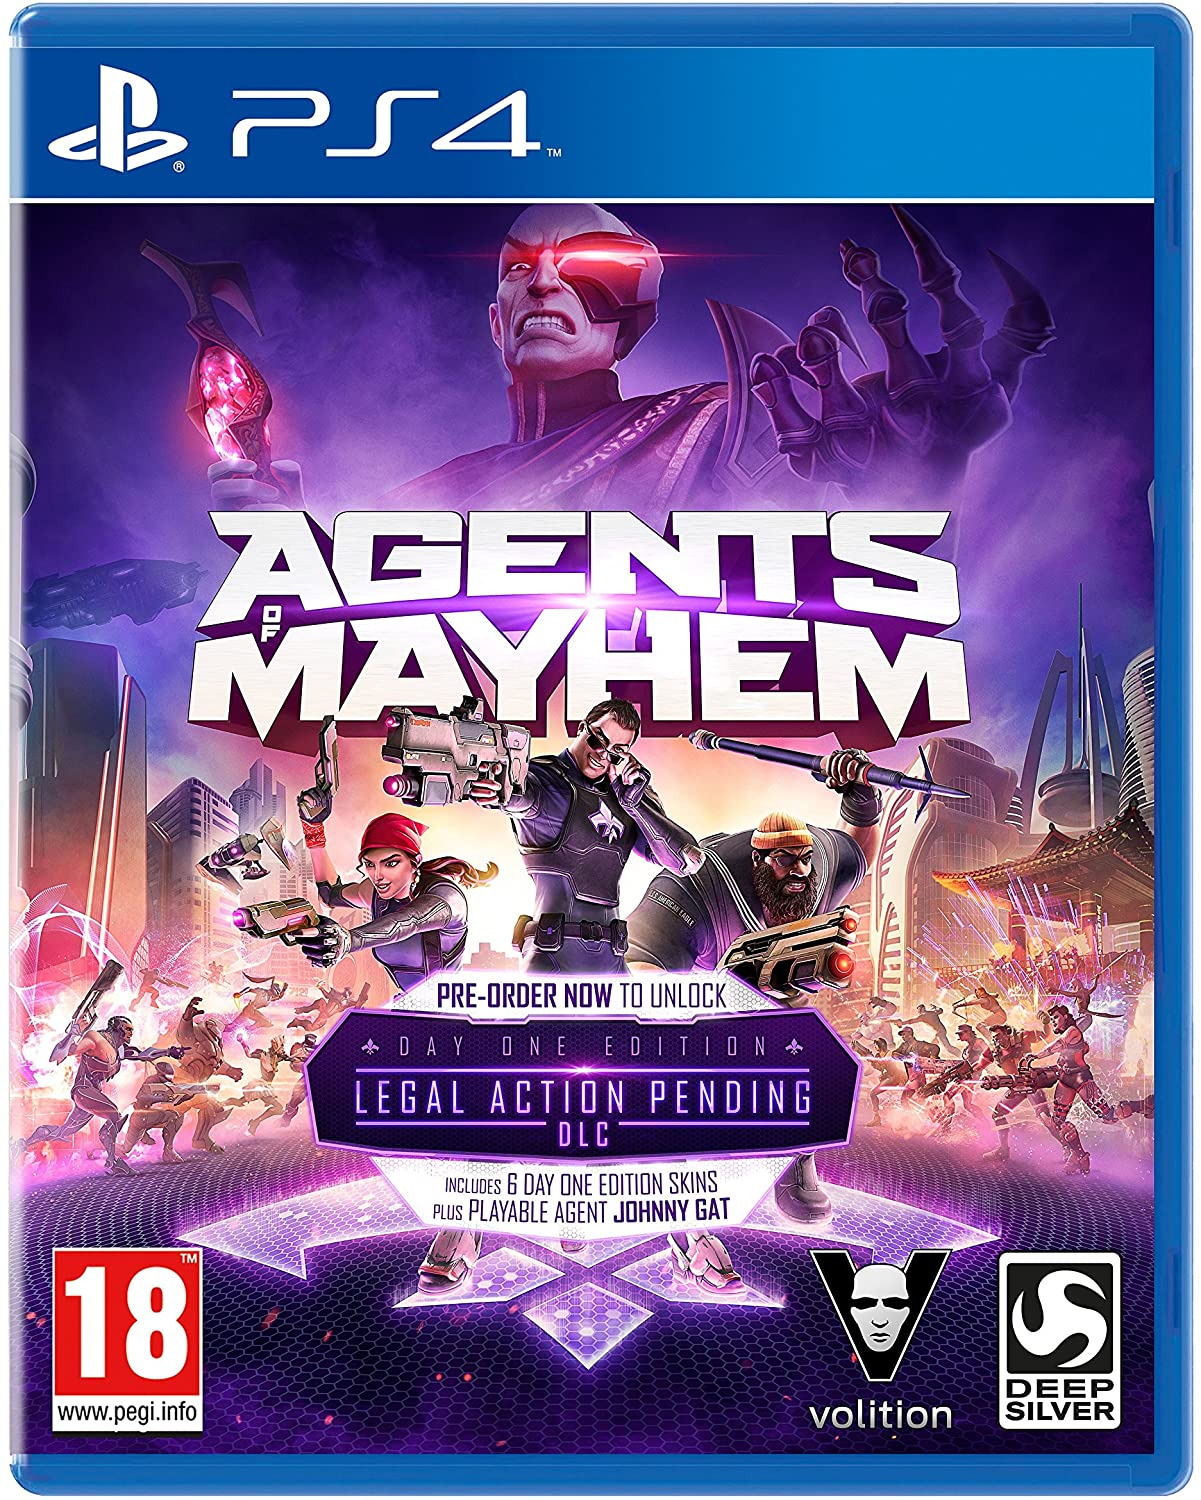 agents-of-mayhem-dey-one-edition-legal-action-pending-dlc-ps4